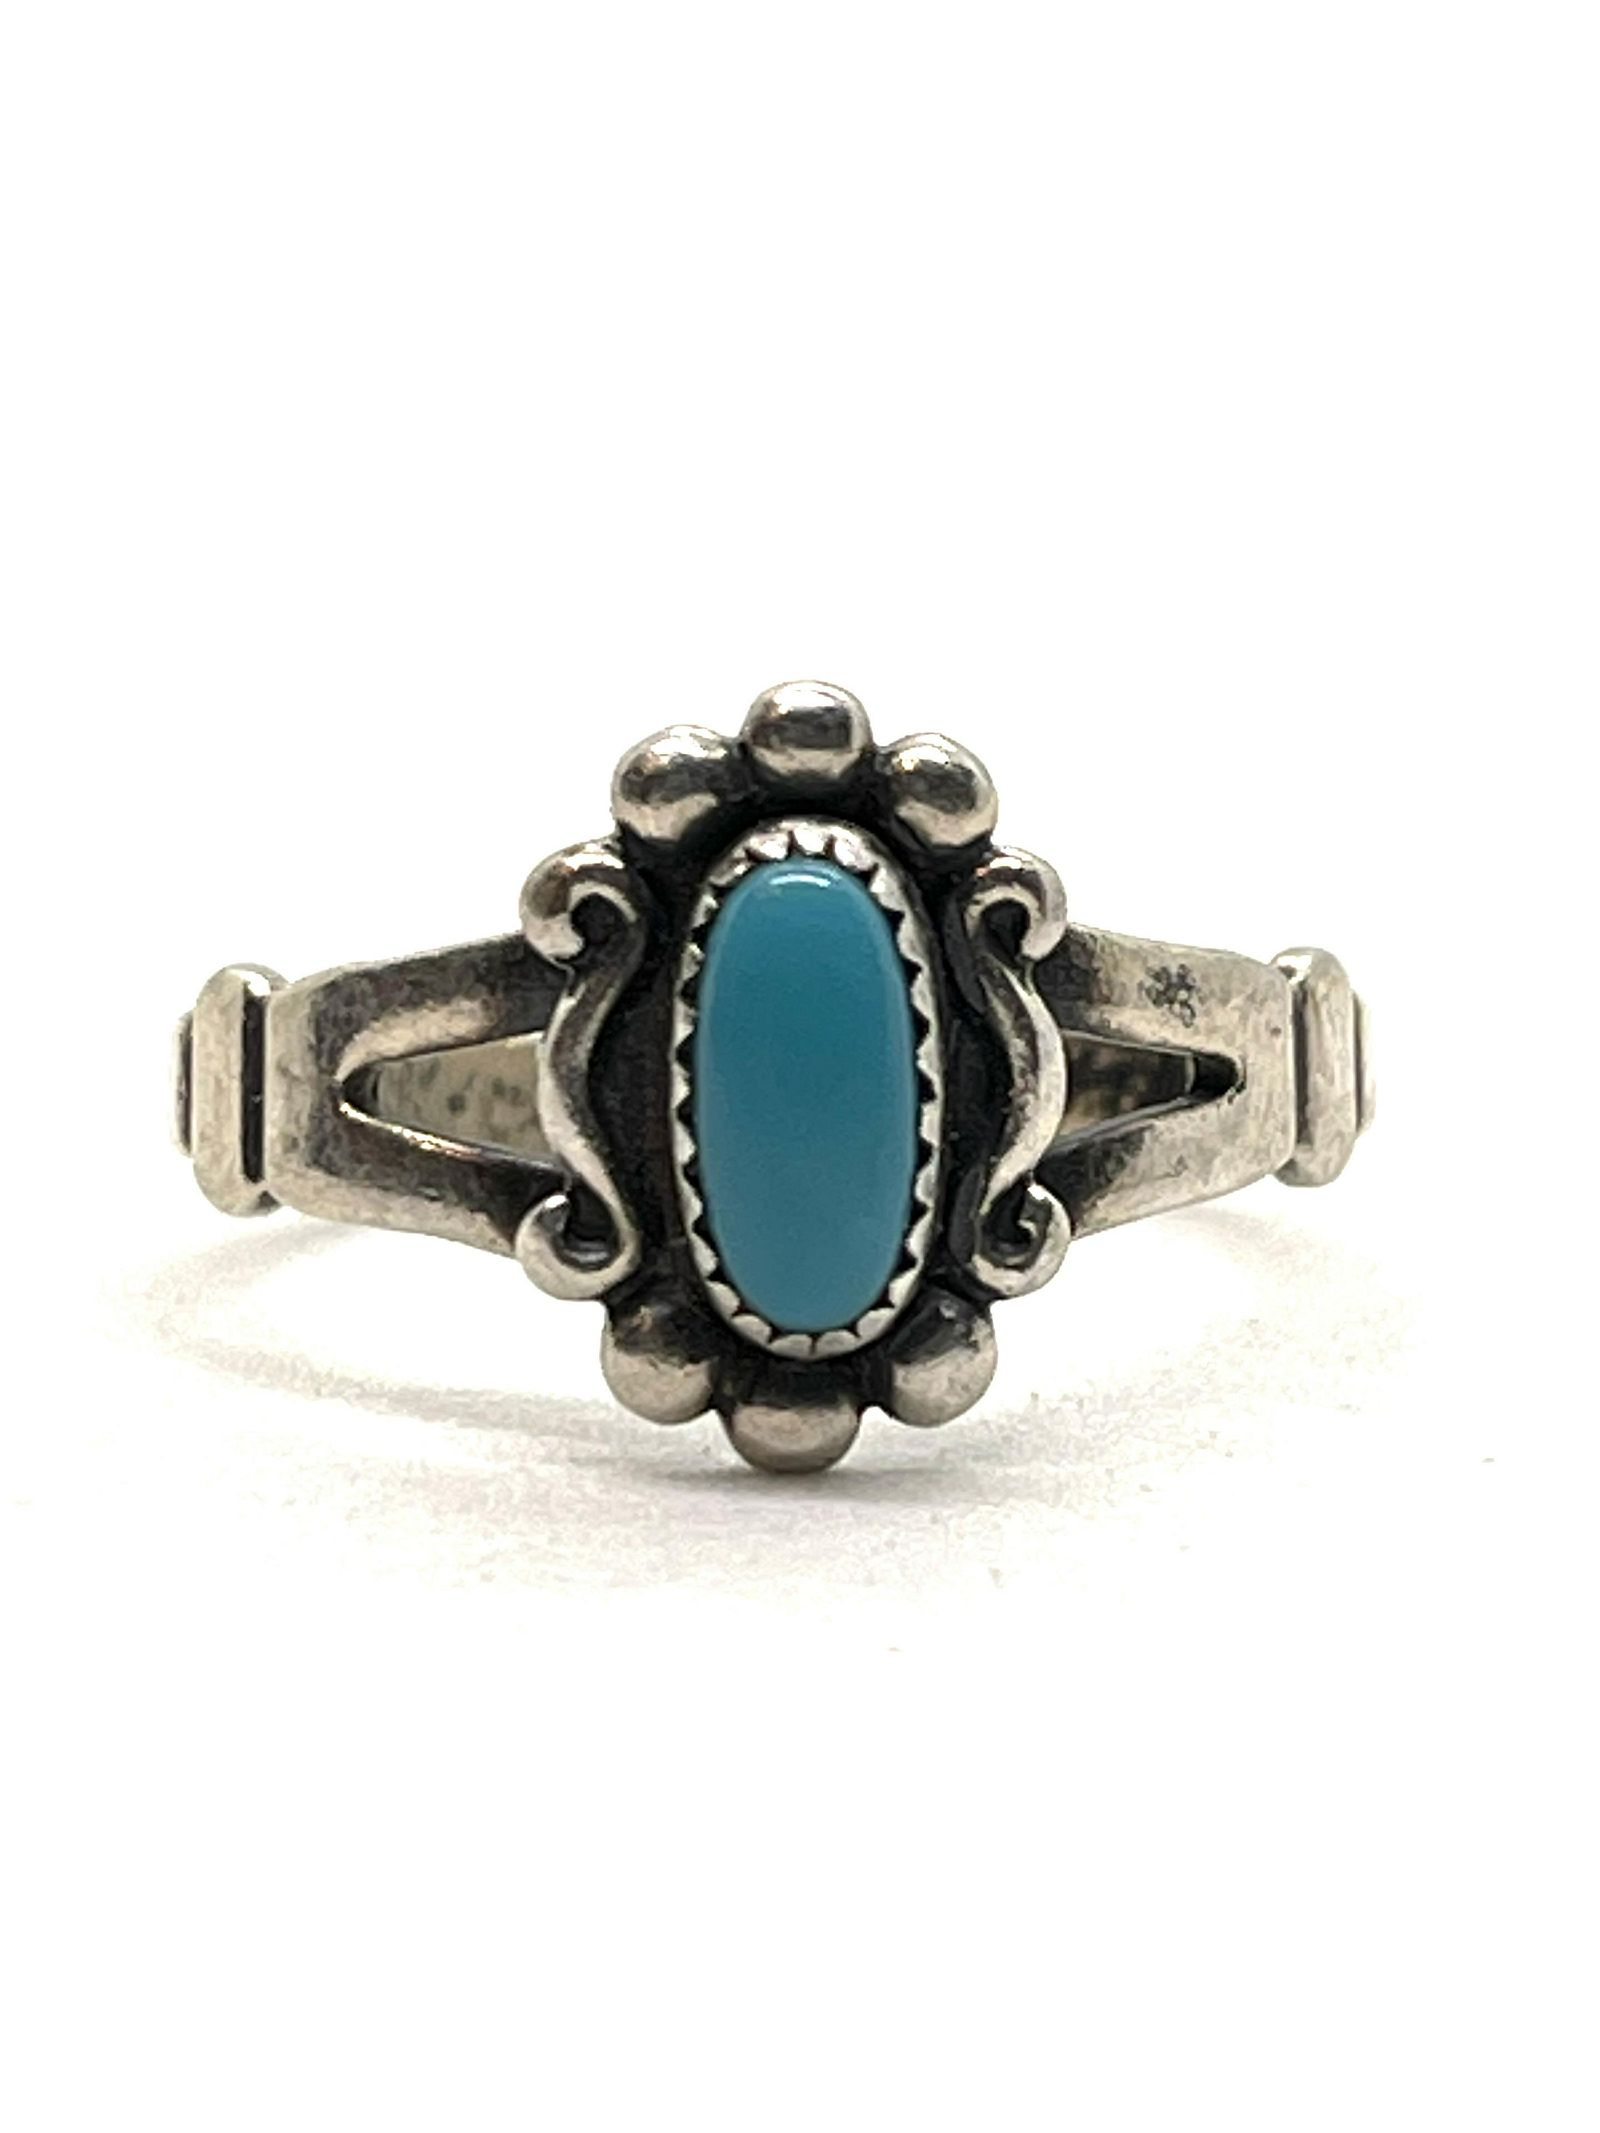 NATIVE AMERICAN TURQUOISE STERLING SILVER RING SZ 7